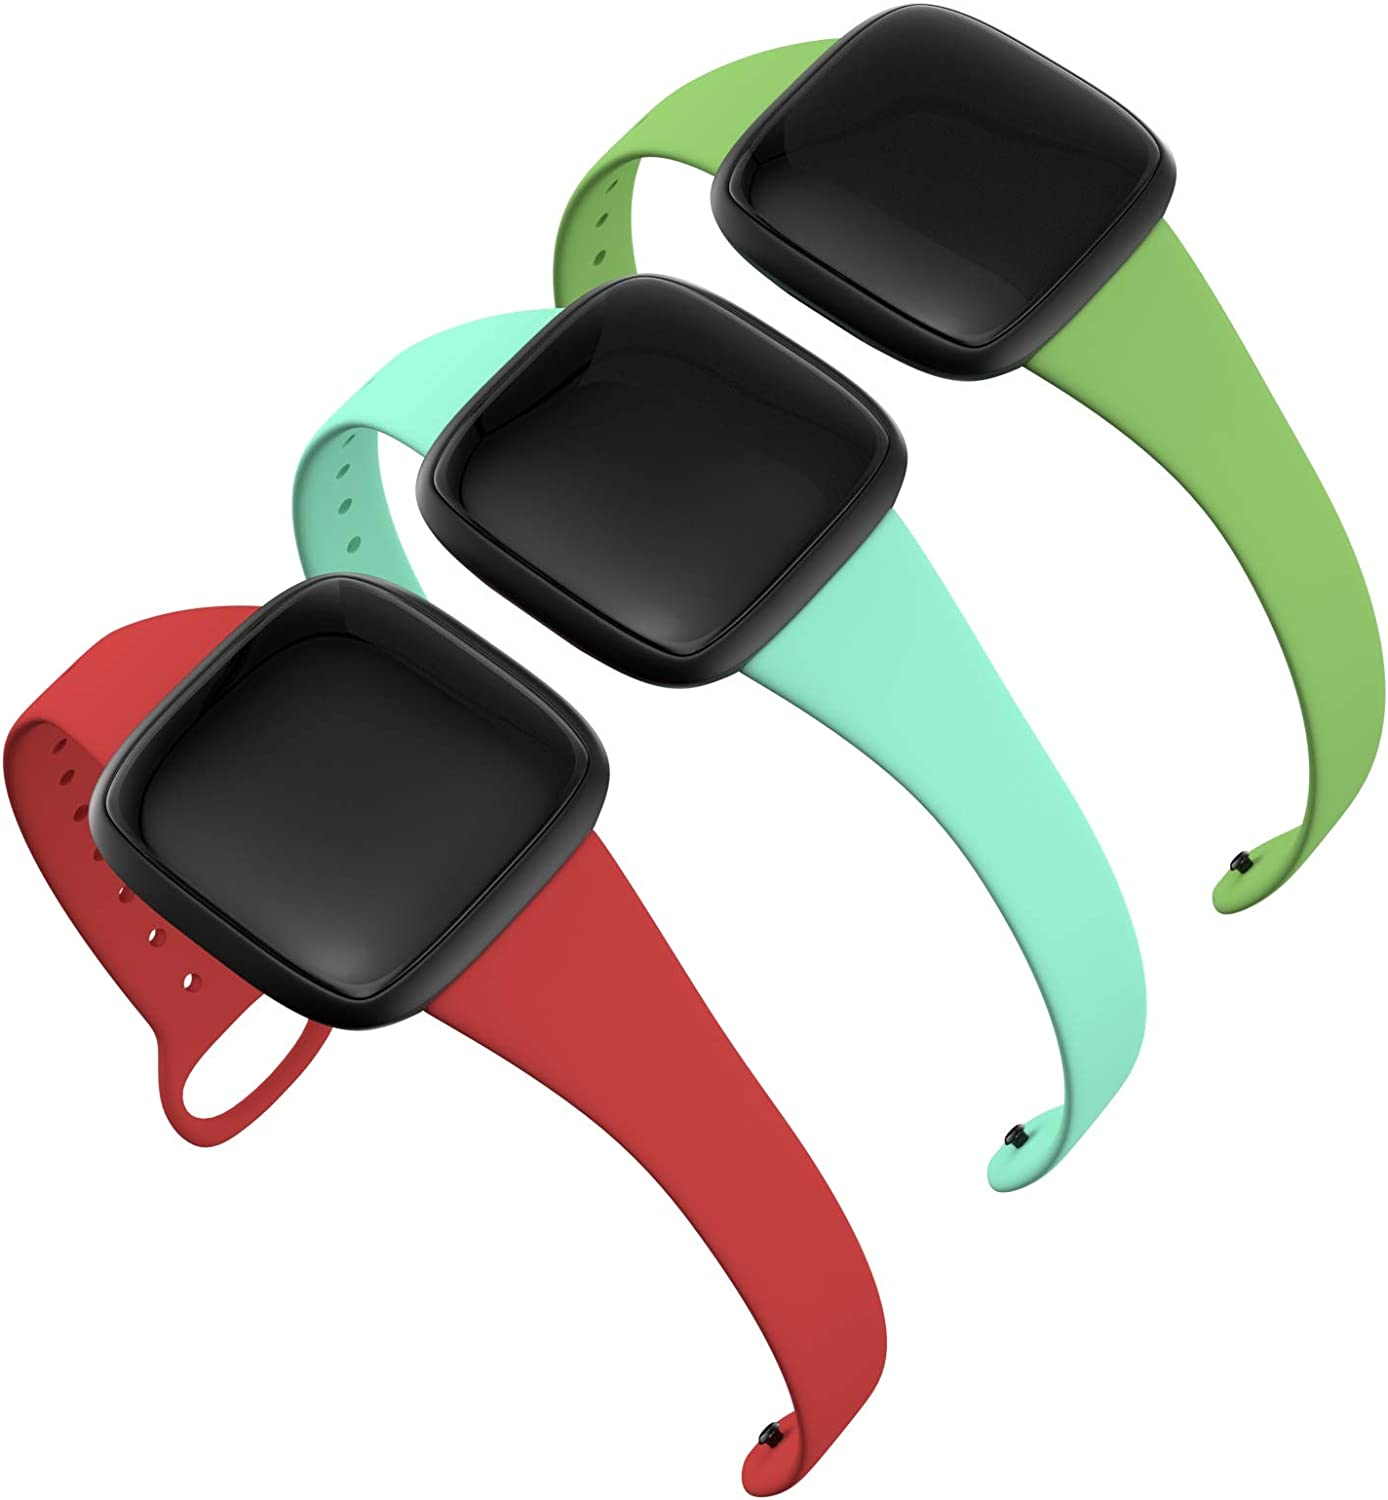 Boname Slim Thin Bands Compatible with Fitbit Versa 3, Women Feminine Narrow Replacement Strap Accessories Silicone Wristbands Fitbit Versa 3 Bands for Women Dressy Cloth (Red/Light Blue/Mint Green)